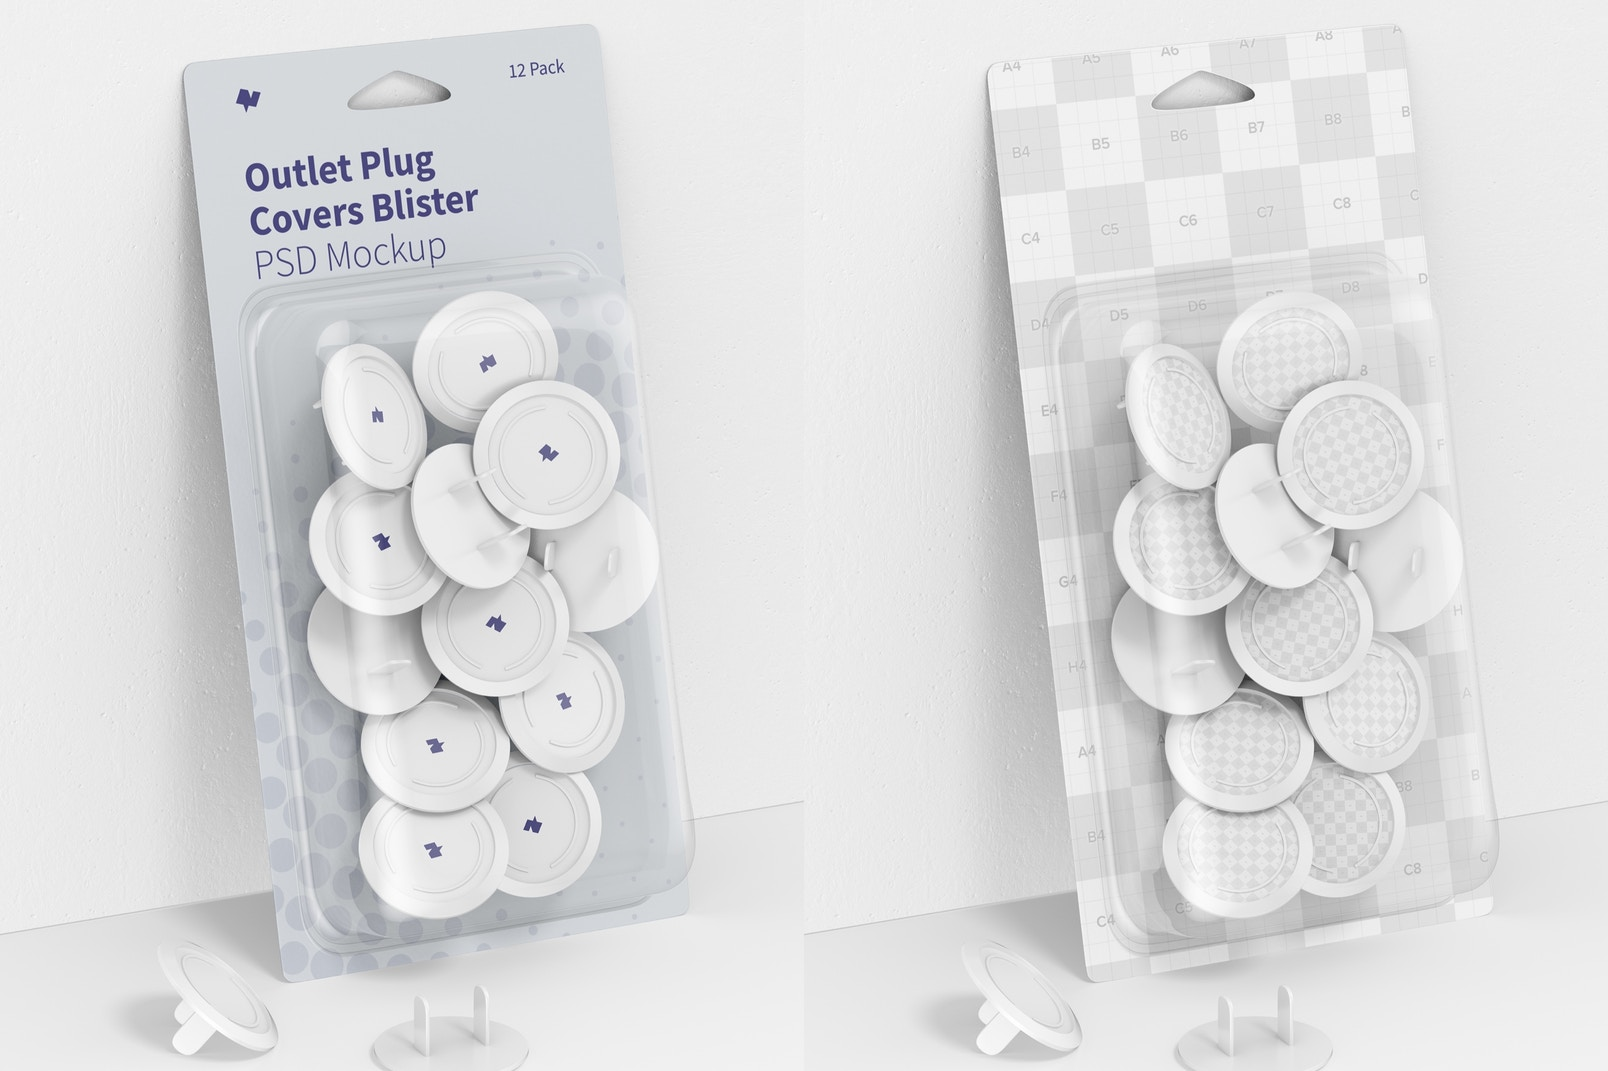 Outlet Plug Covers Blister Mockup, Leaned